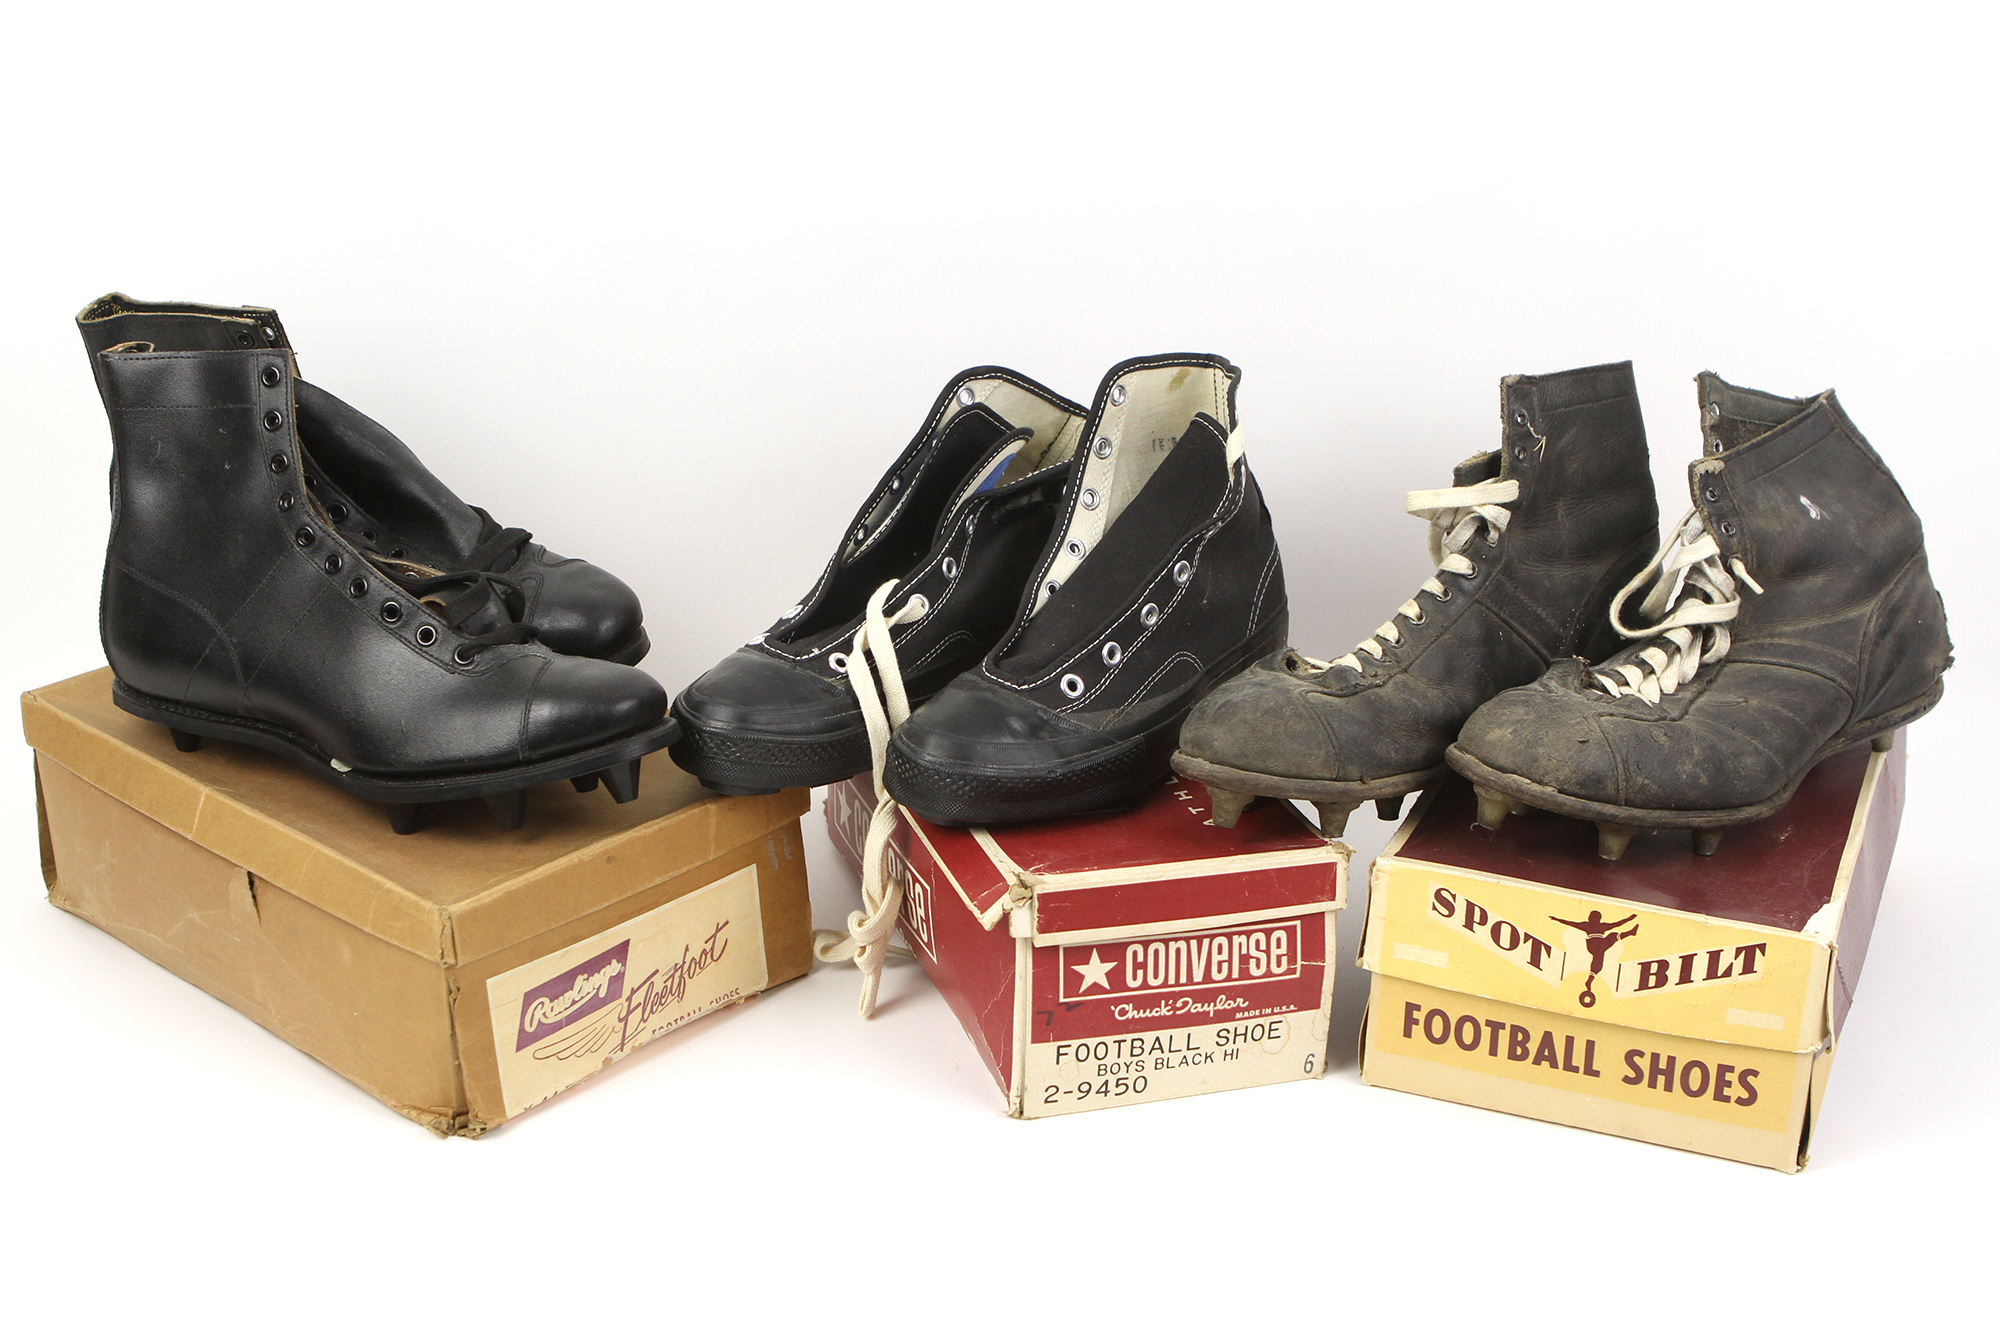 bcb31462c4d2 Lot Detail - 1950's-60's Game Worn Football Cleats w/ Original Boxes ...